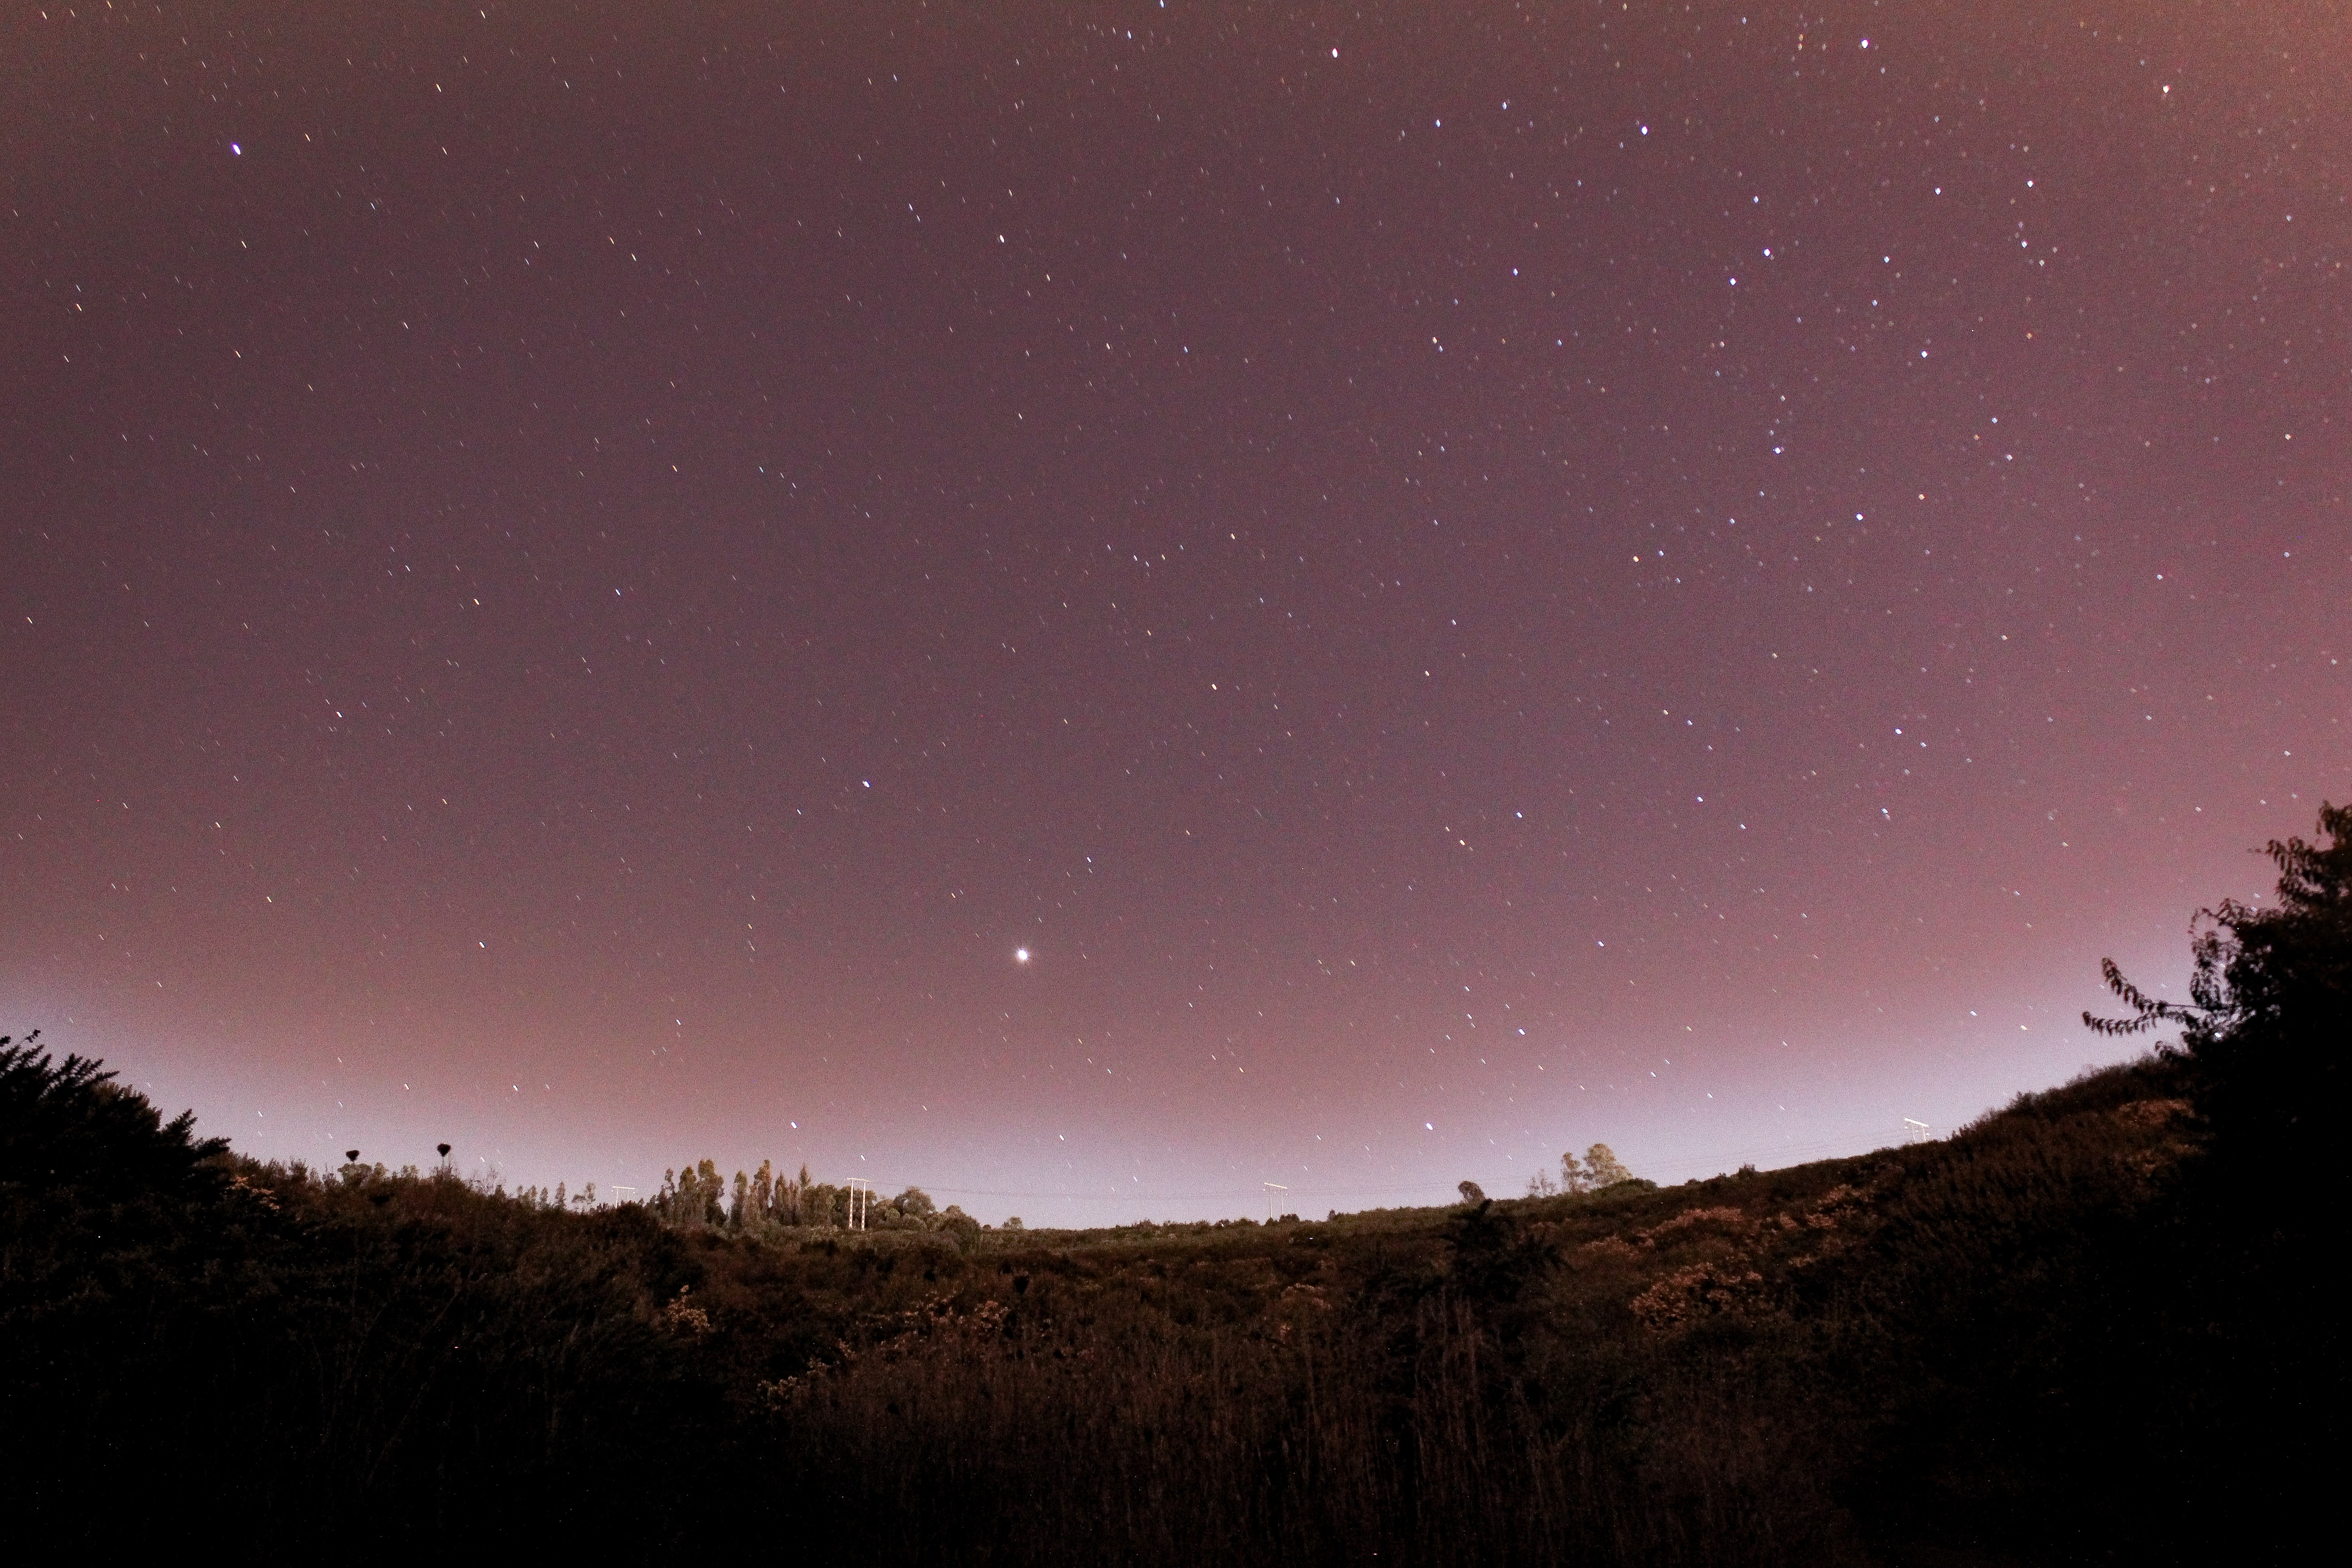 high exposure photography of starry sky at night